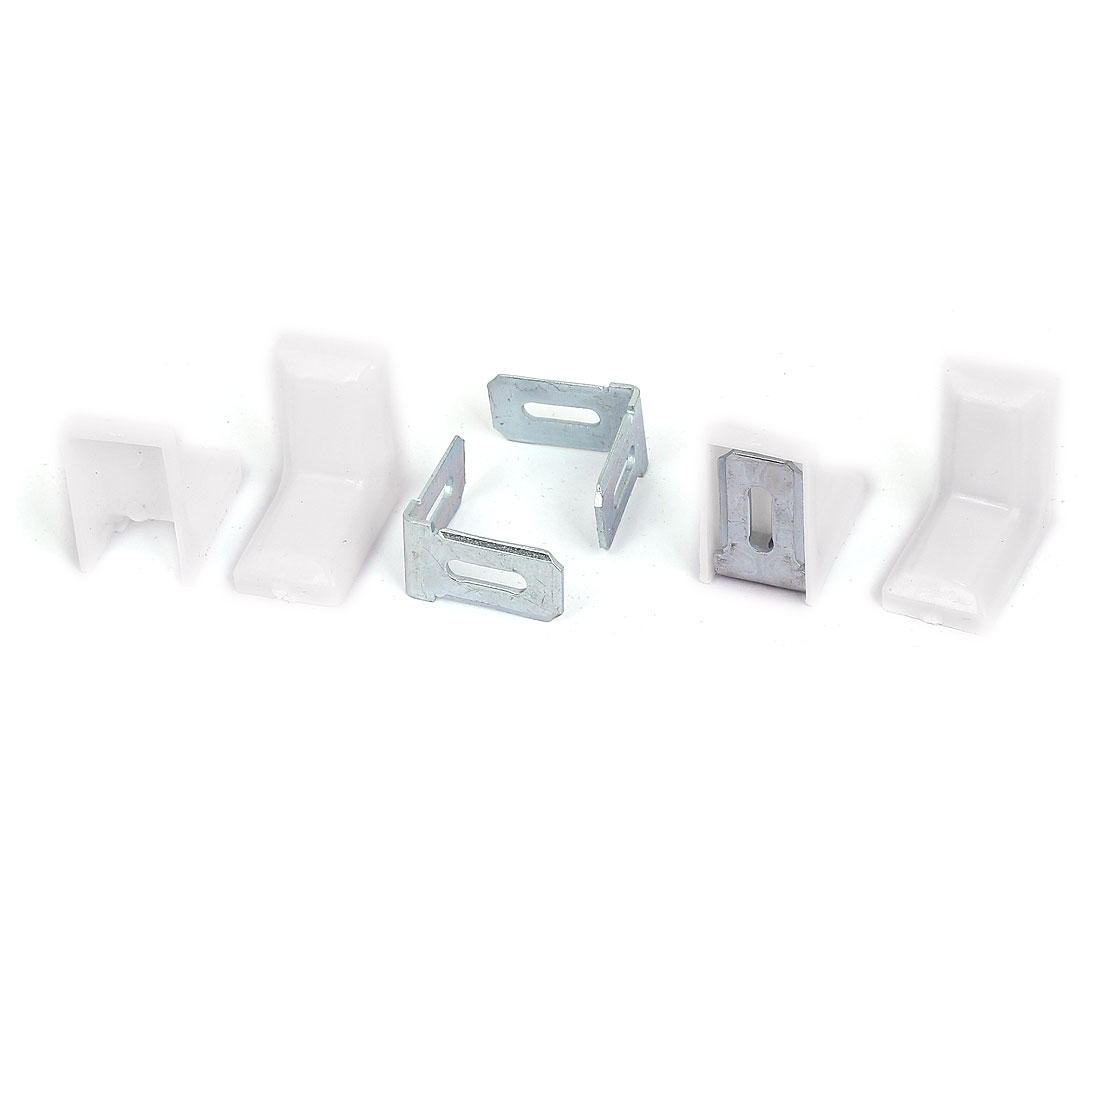 29mmx29mm Cabinet Cupboard Shelf Corner Brace Plate Right Angle Bracket 4pcs